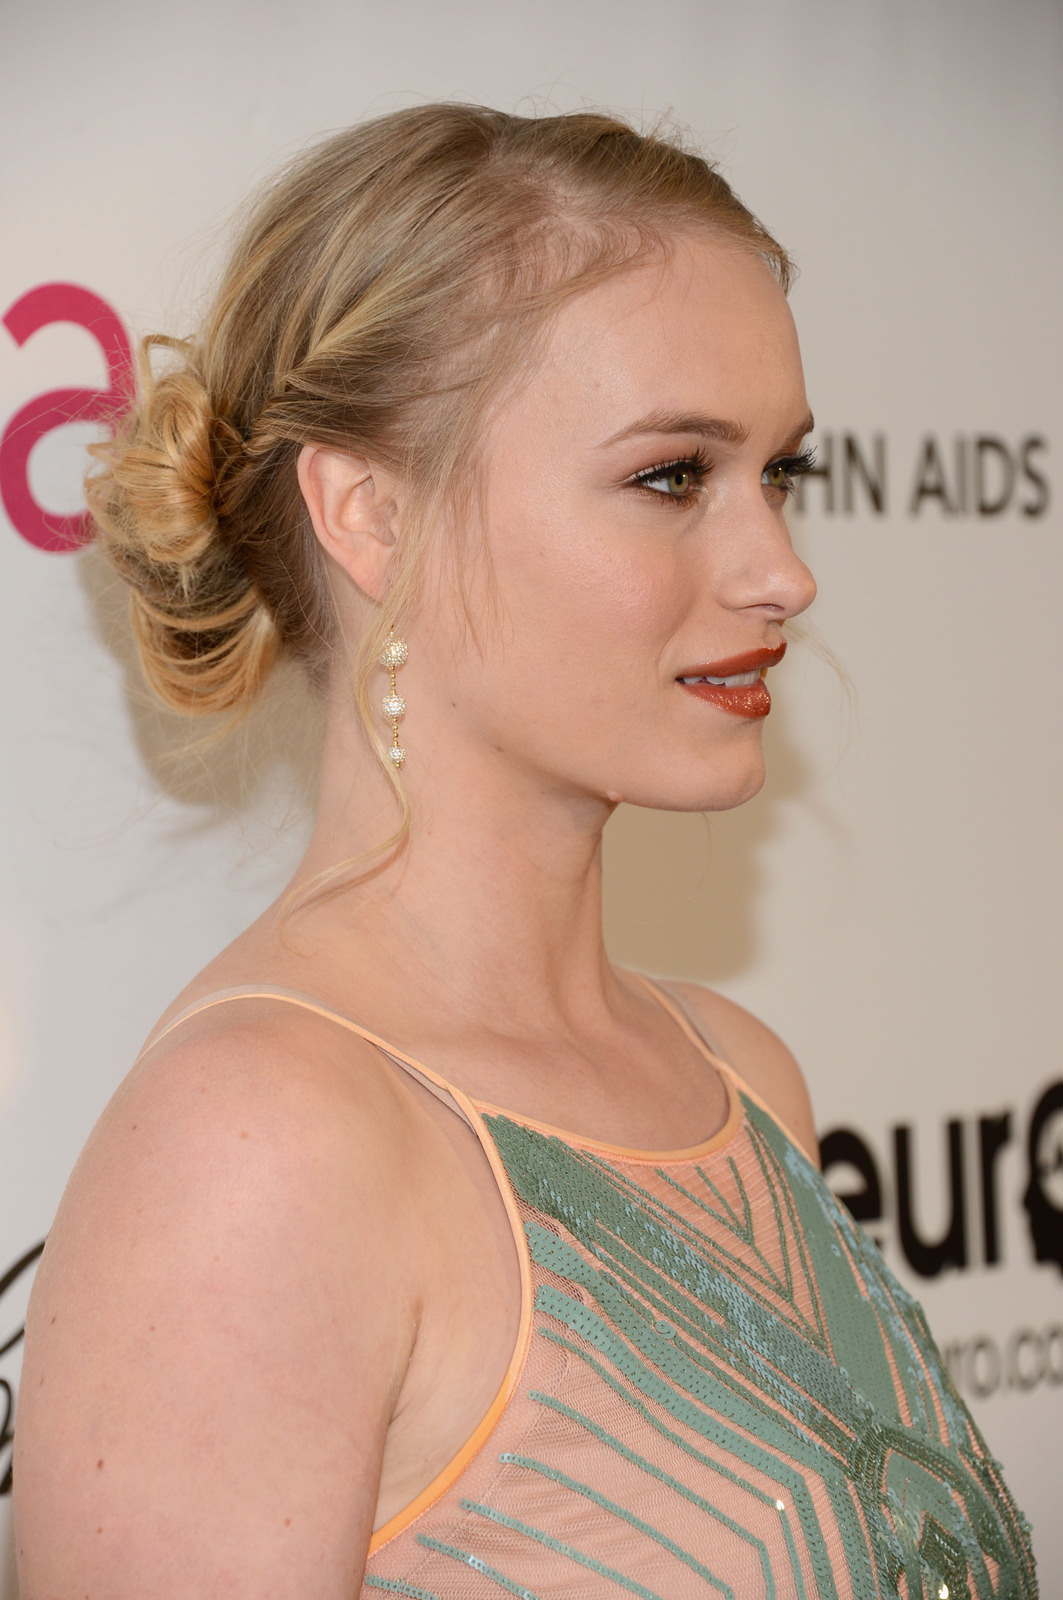 Leven Rambin Photo Gallery